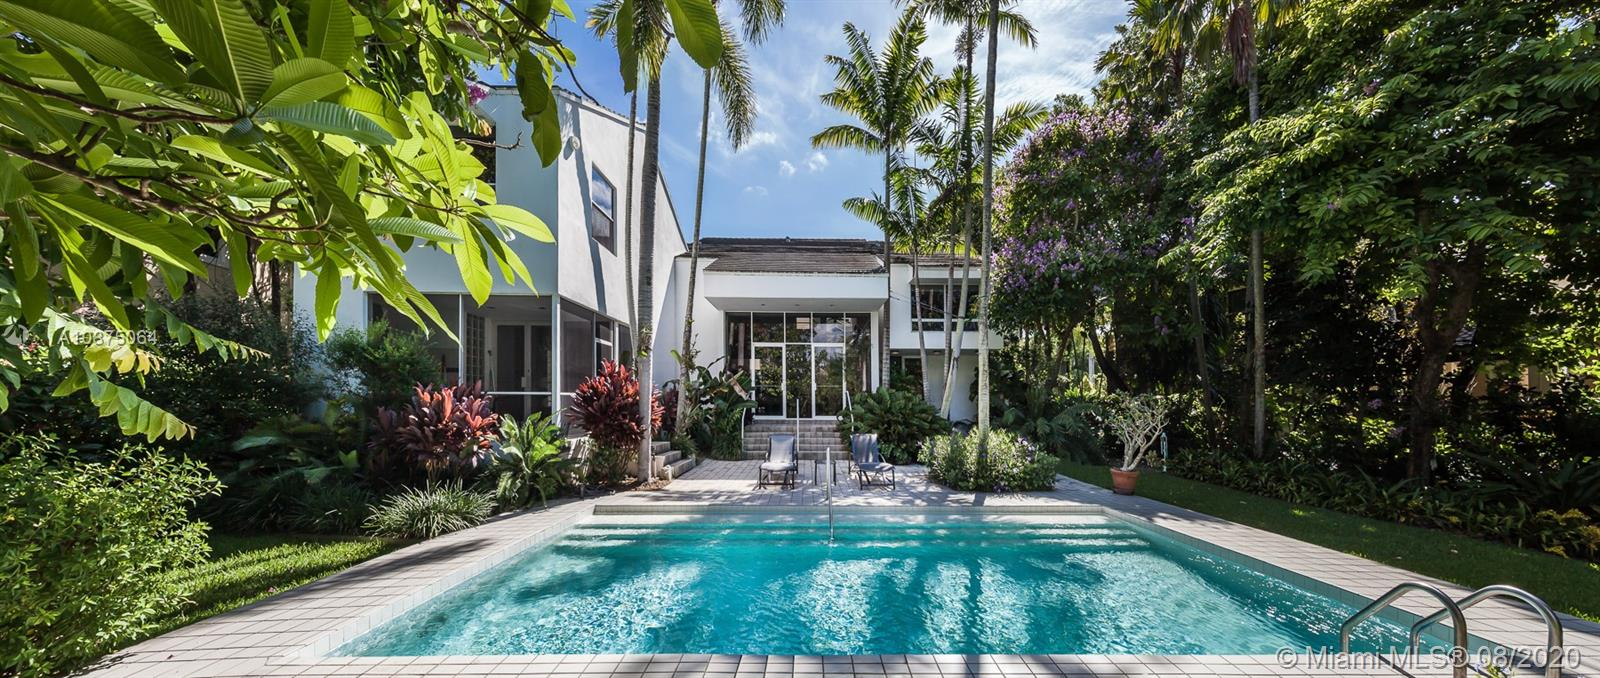 Located in the prestigious Islands of Cocoplum, this contemporary home sits on an 18,676 SqFt lot on a cul-de-sac. Built in 1988, addition in 1992, by famous Peruvian architect Miguel Rodrigo Mazure, this 5,962 total Sq Ft, 4BD/4+1BA home was made for entertaining with a sparkling pool, outdoor BBQ, and brand new 27 foot dock. Convenient access to Biscayne Bay. Landscape design by Raymond Jungles. The living room offers an open layout with a formal dining room and bar great for hosting. Enjoy 3 levels of authentic & unique architecture with natural light illuminating the living room. Interior features: chef's kitchen w/ stainless steel appliances, dine-in kitchen & breakfast area. Primary suite with impressive bathroom, walk-in closet with built-ins and beautiful water views.